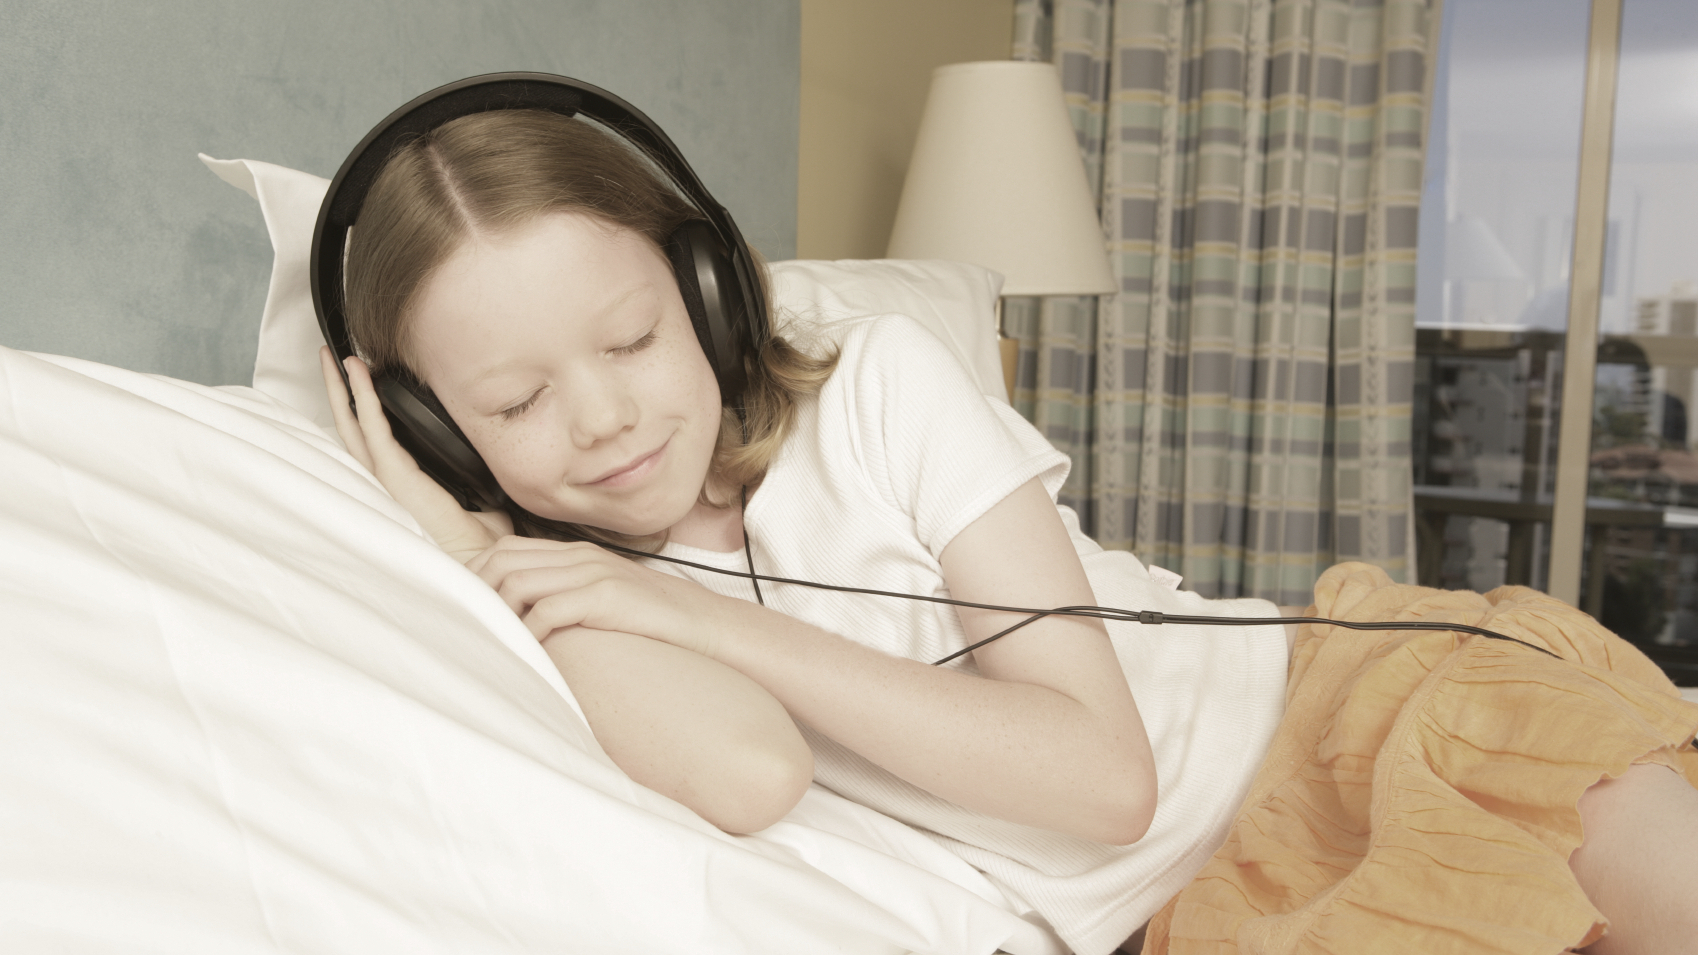 The Good Listener: Where Are All The Great Lullabies?